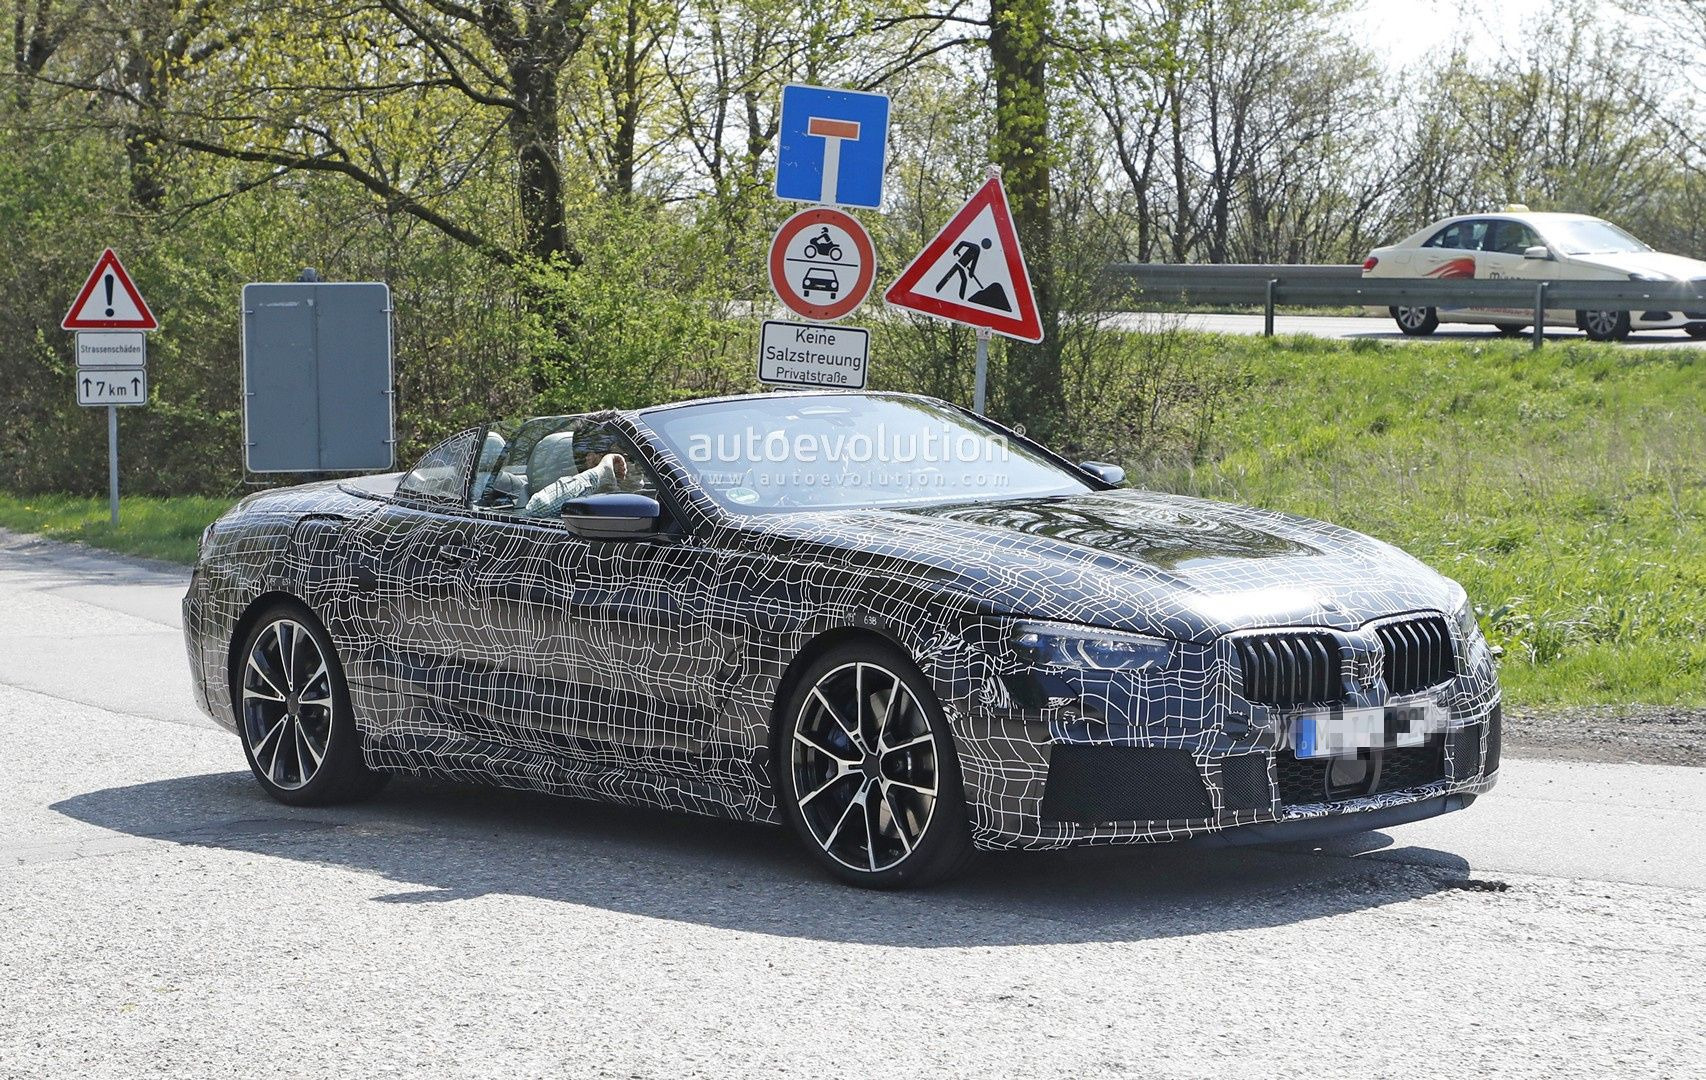 8 Series Convertible While Testing It 18 Photos